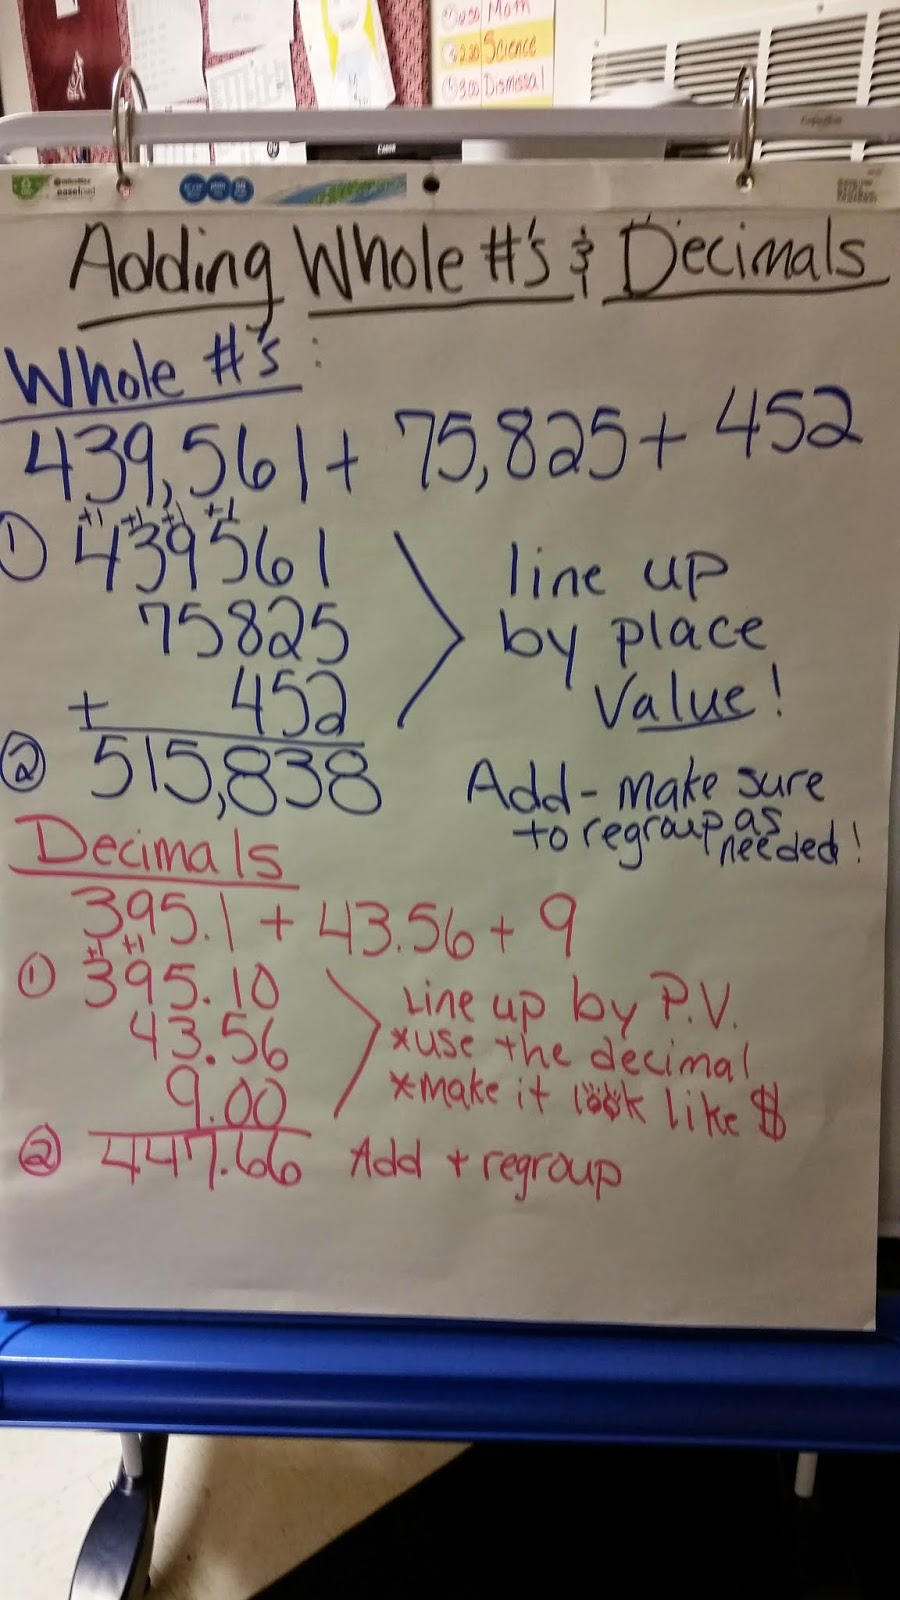 Worksheet Adding Whole Numbers And Decimals parent student information adding whole numbers decimals decimals